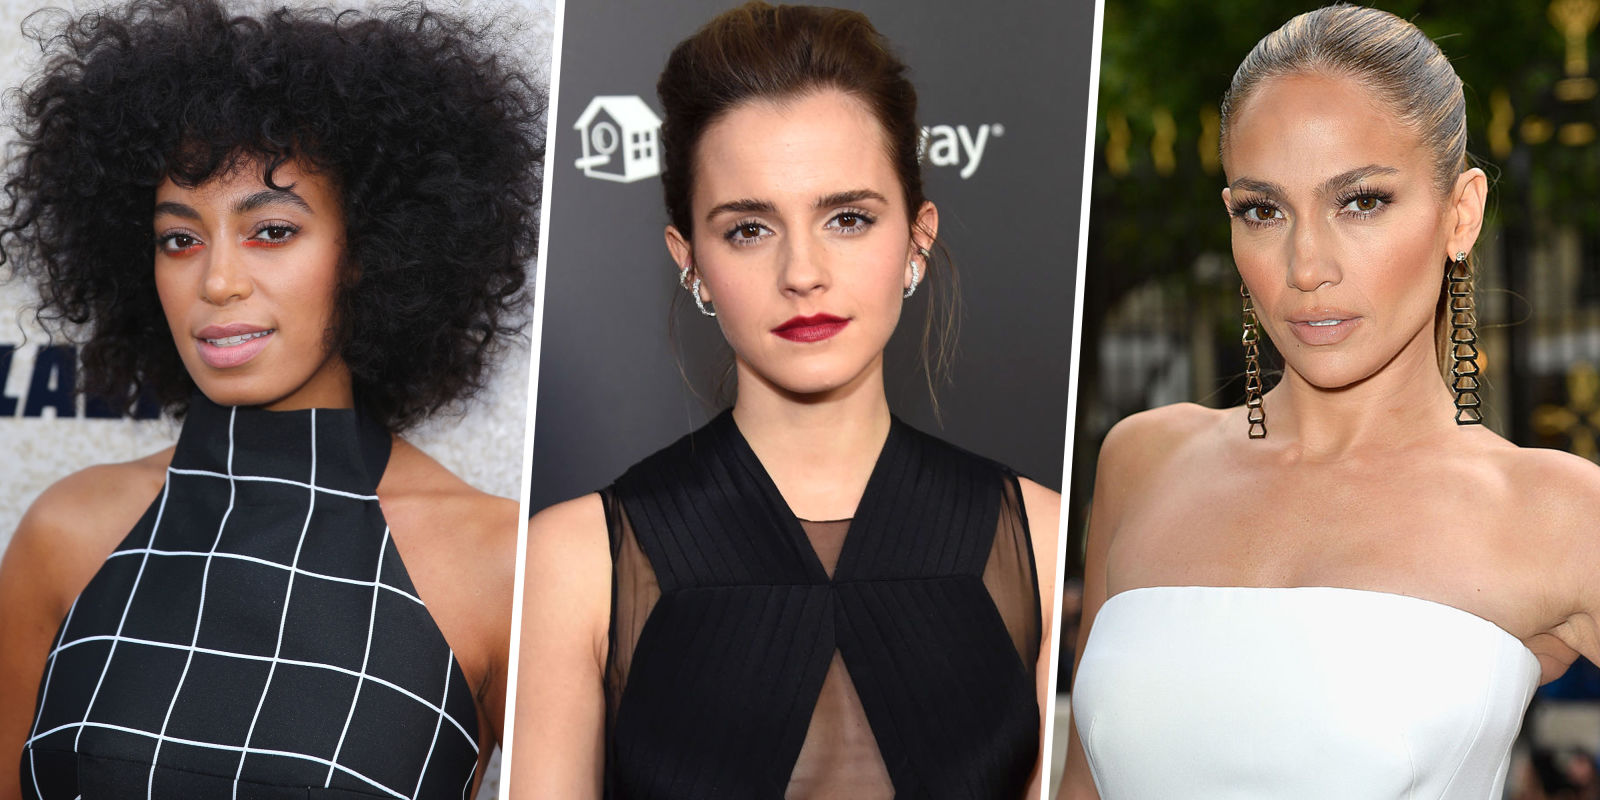 Womens Pubic Hair Styles: 20 Celebrity Pubic Hairstyles